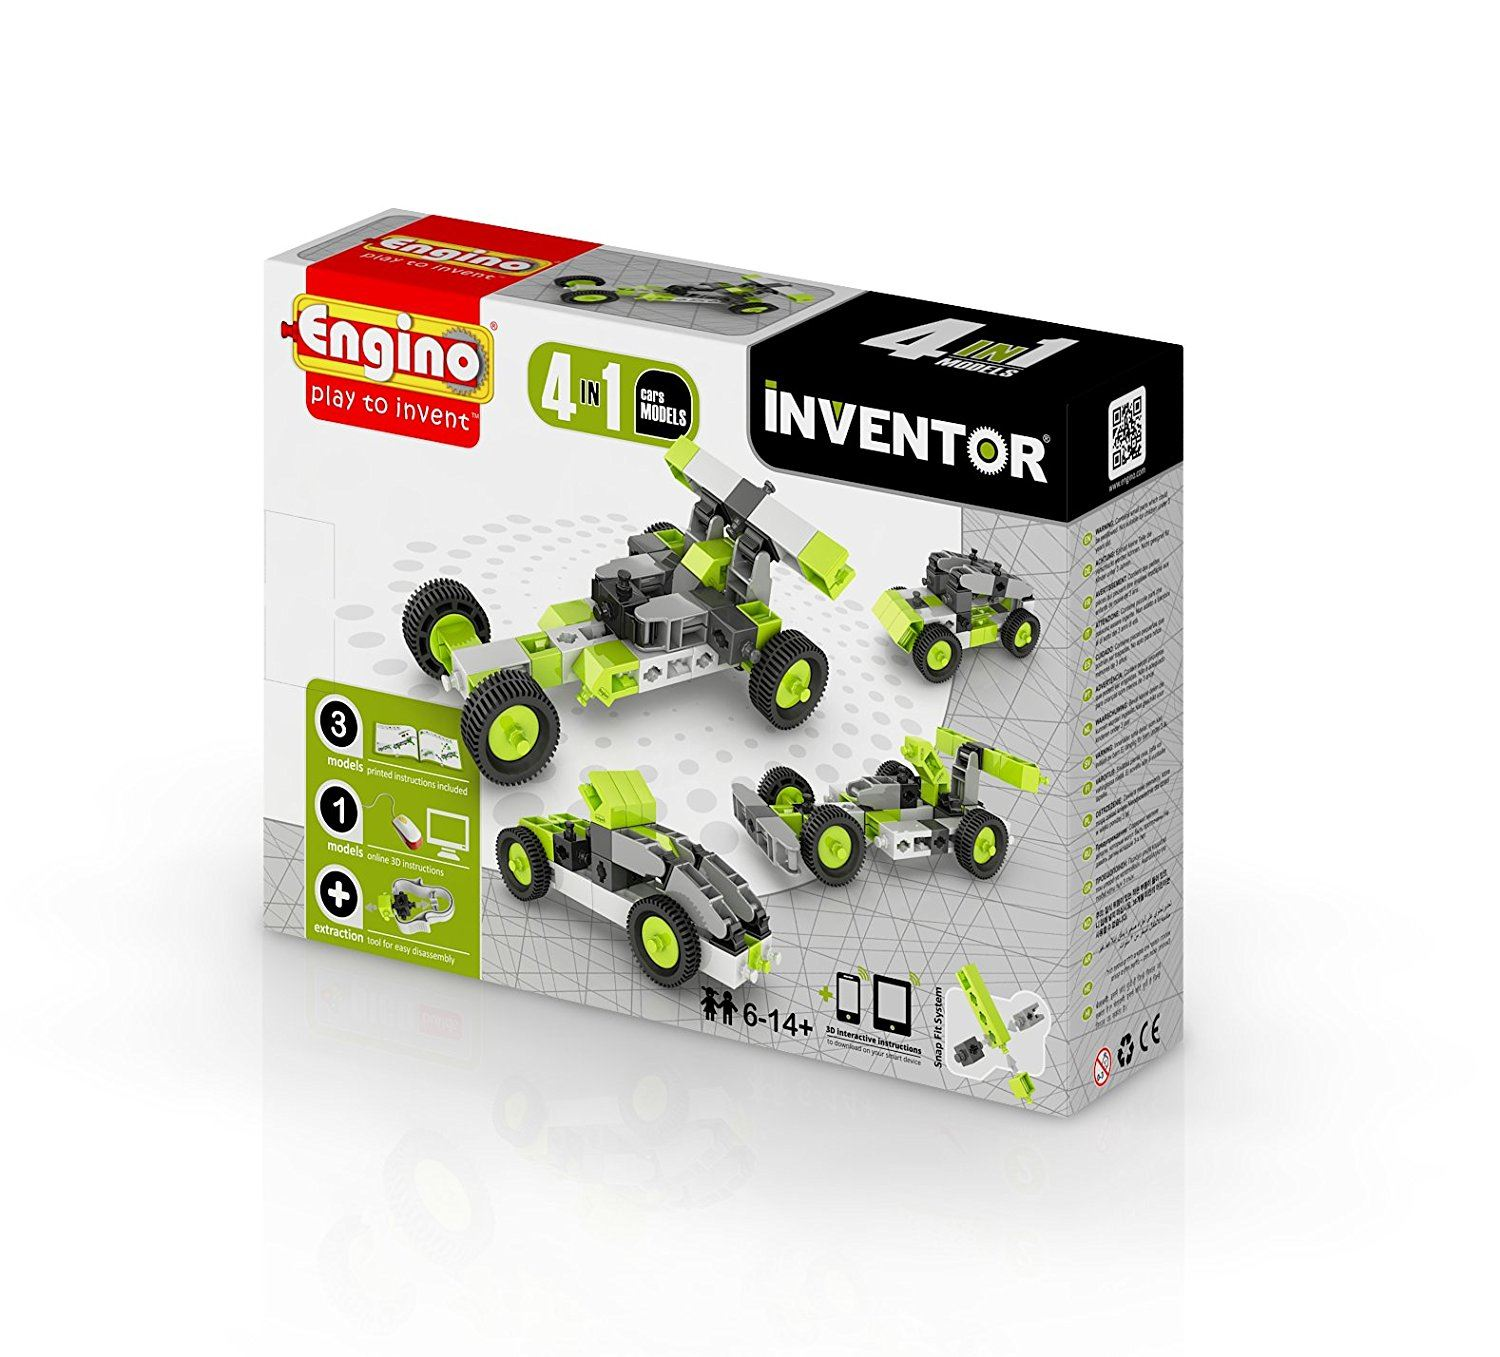 Engino Inventor 4 In 1 Model Car #0431